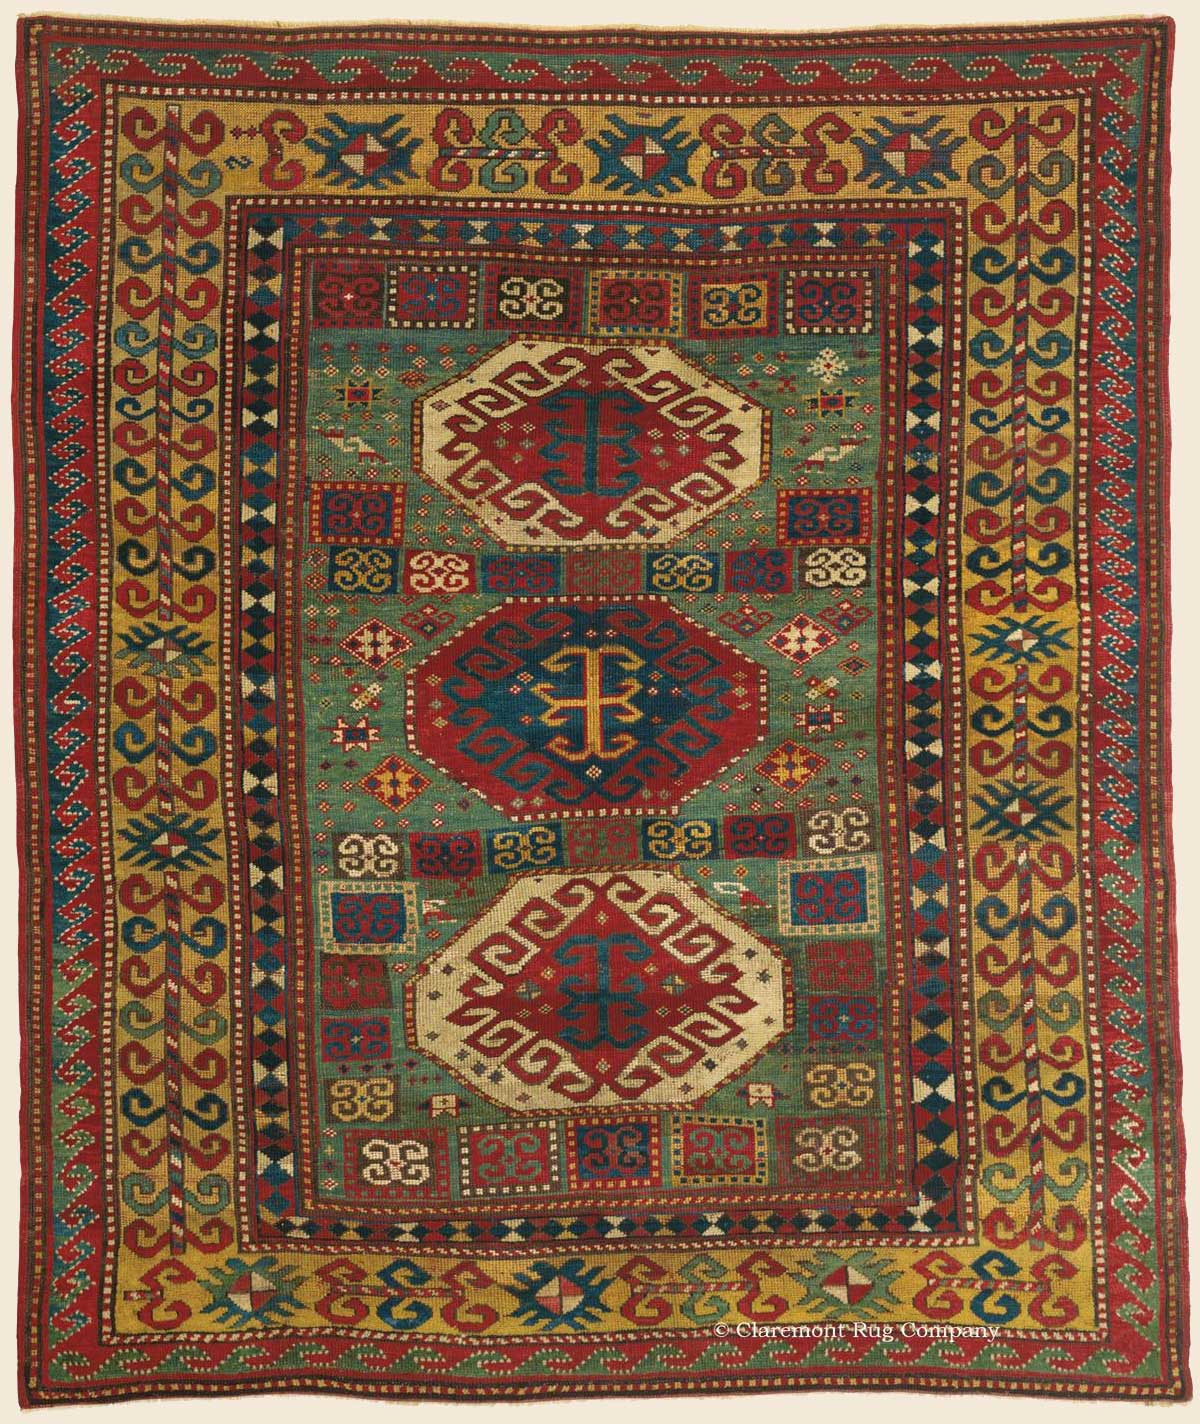 BORDJALOU KAZAK, Southeast Caucasian Antique Rug